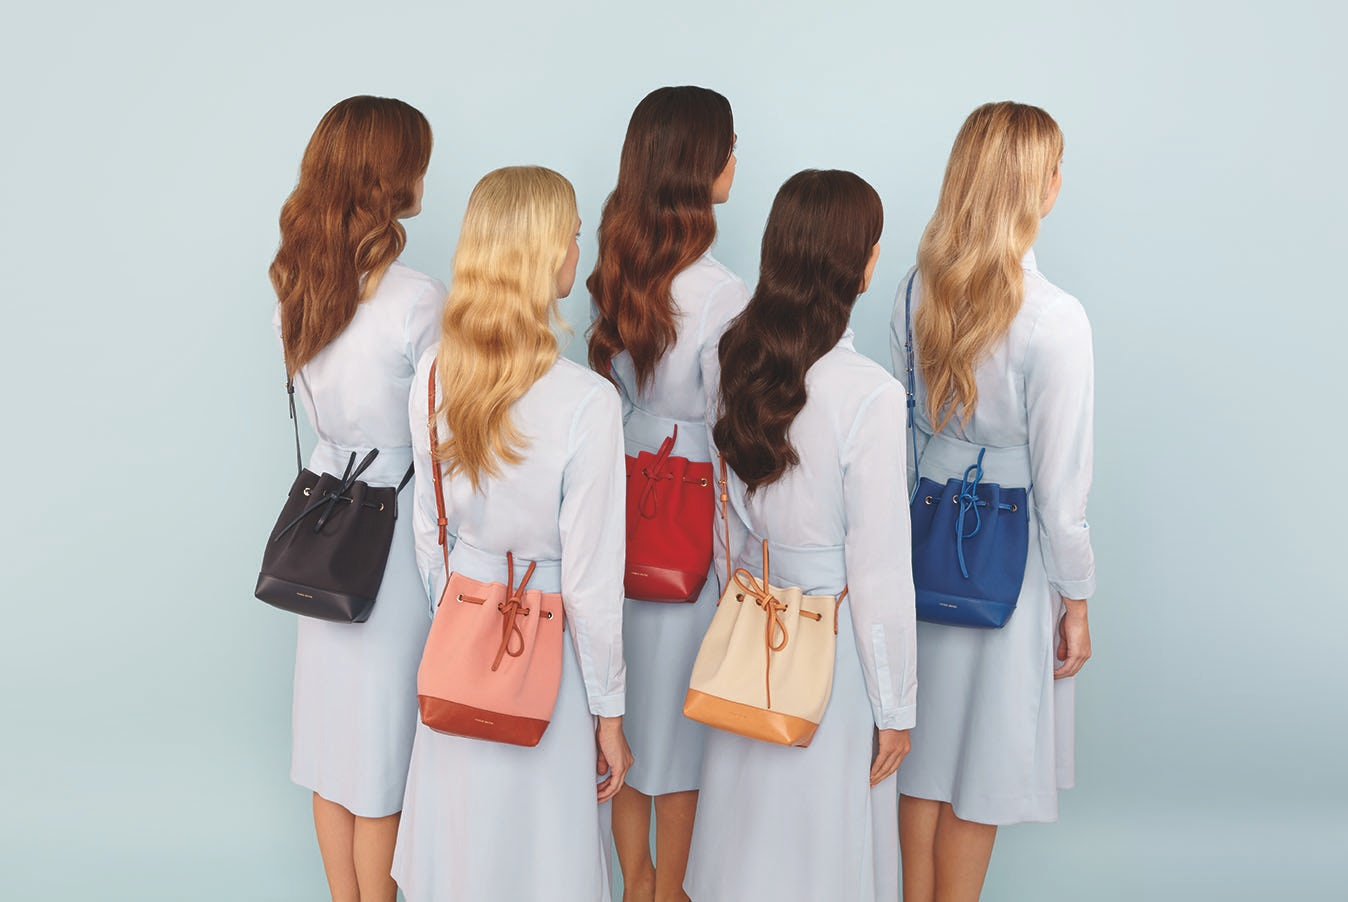 Mansur Gavriel bags | Source: Courtesy